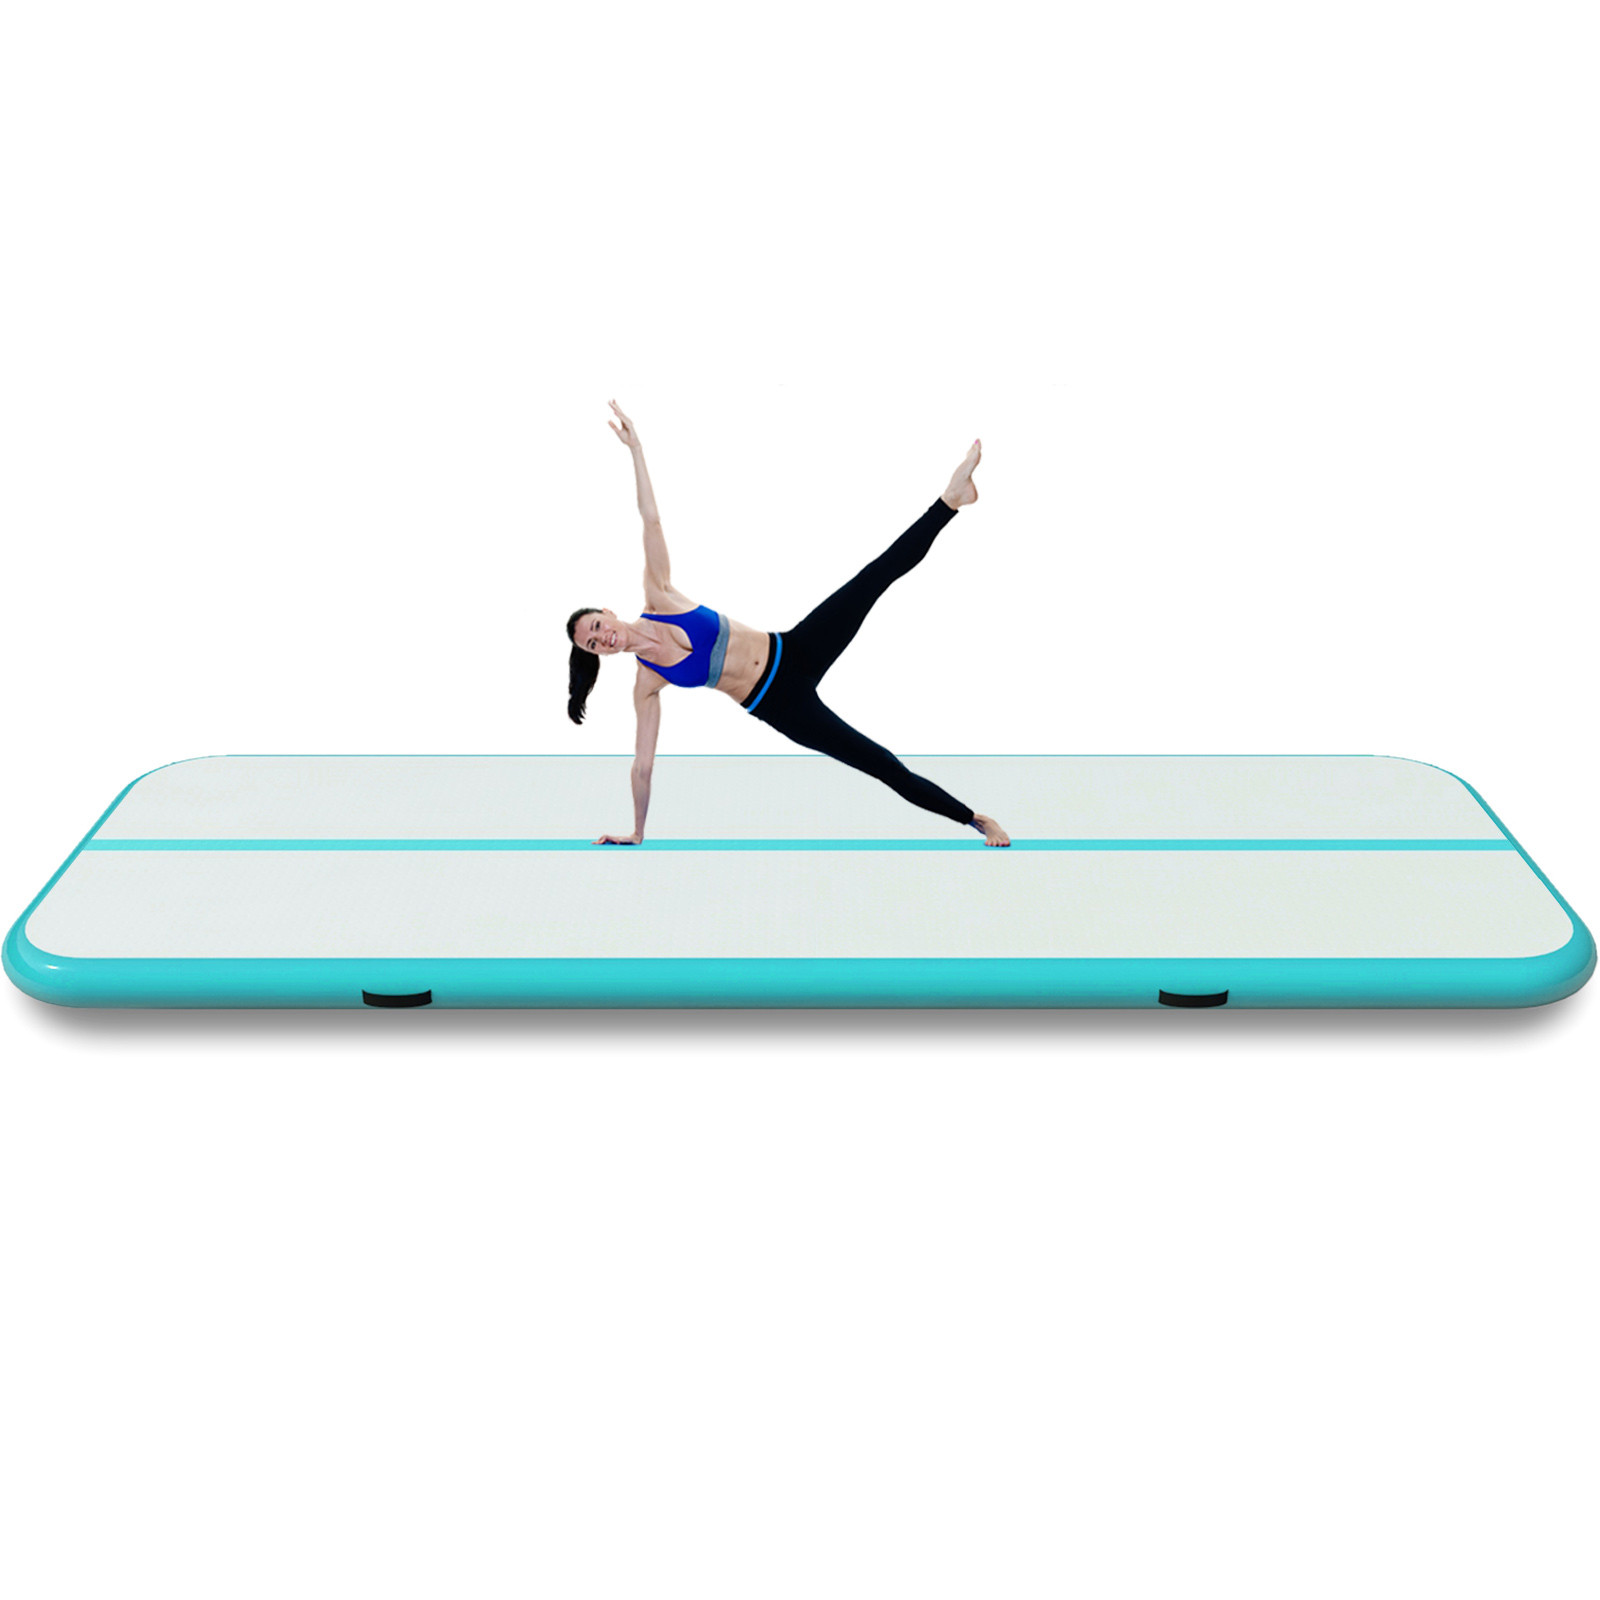 4-12M-Tapis-de-Gymnastique-Gonflable-Yoga-Fitness-Tapis-de-Tumbling-Airtrack miniature 46